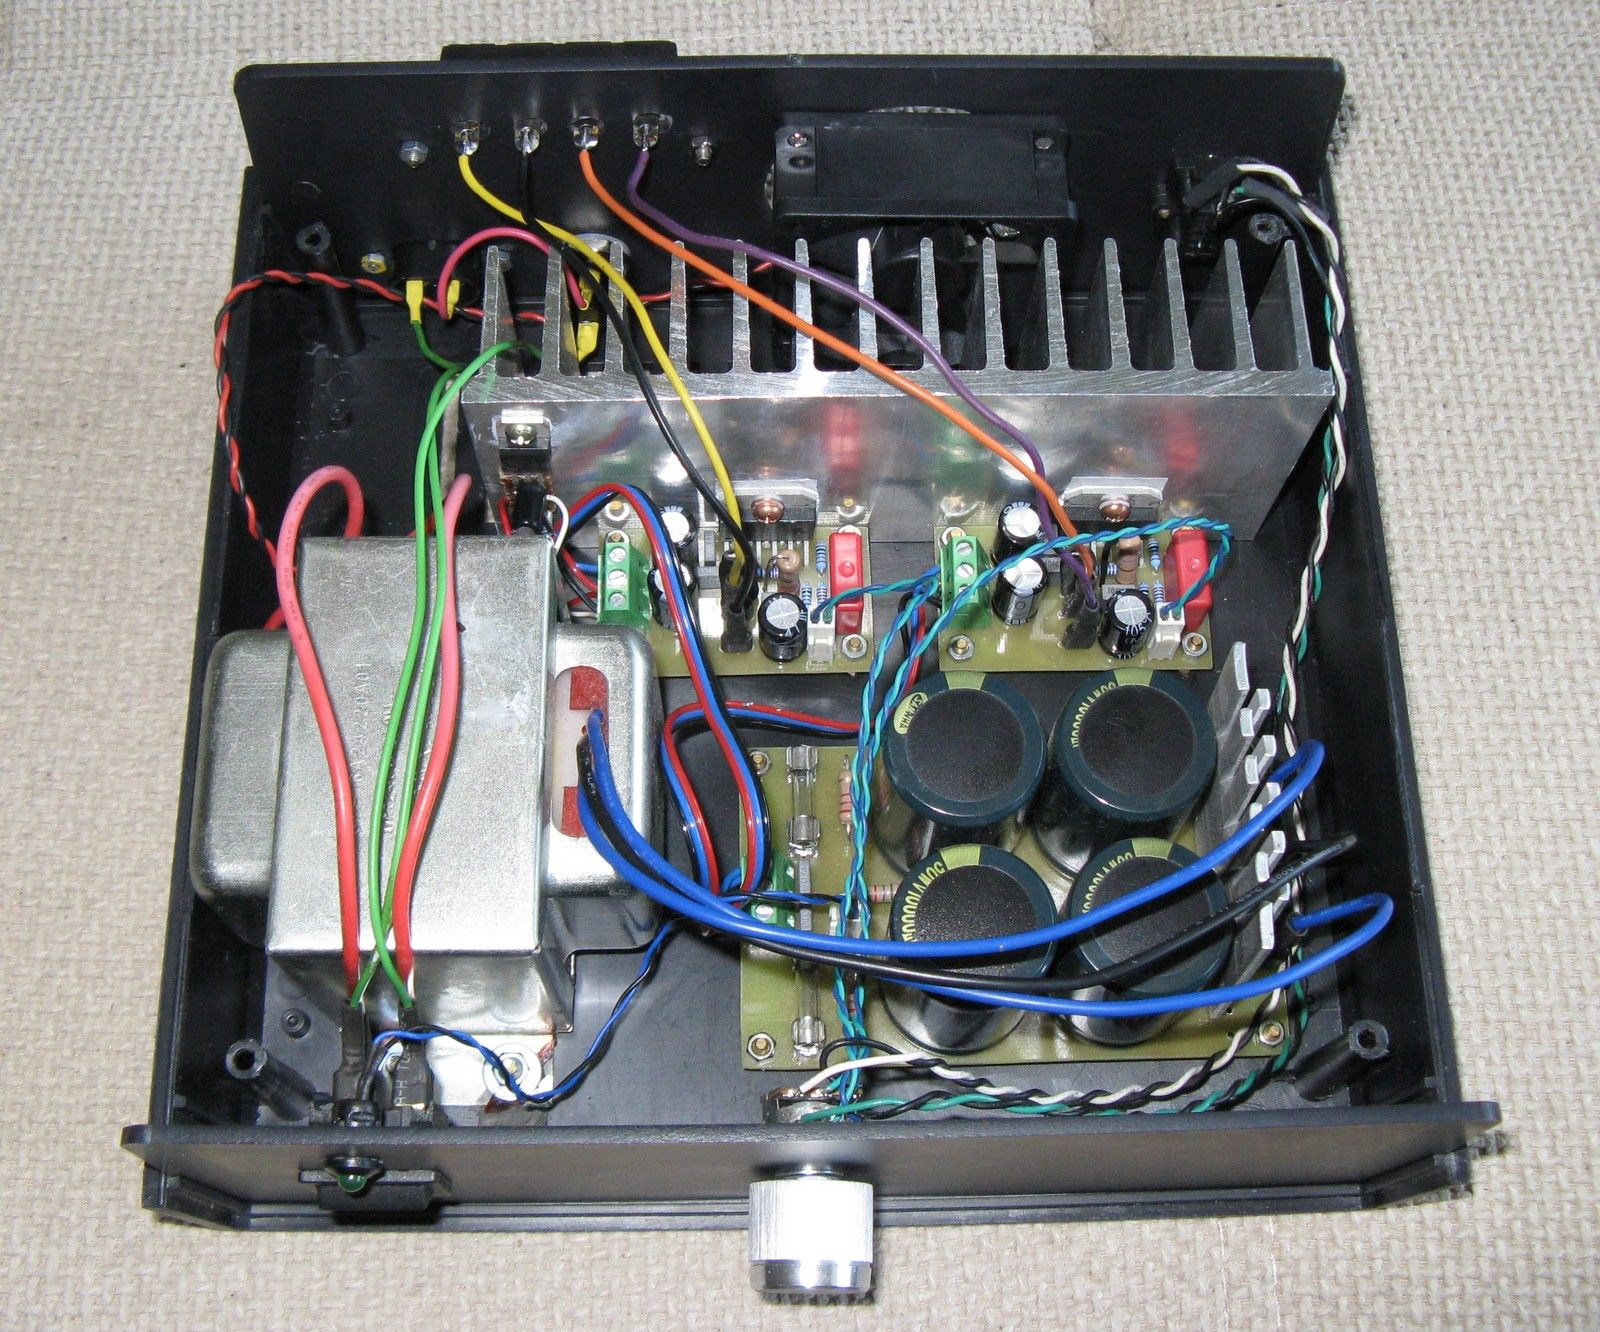 50W LM3886 Power Amplifier Two guys and a tractor